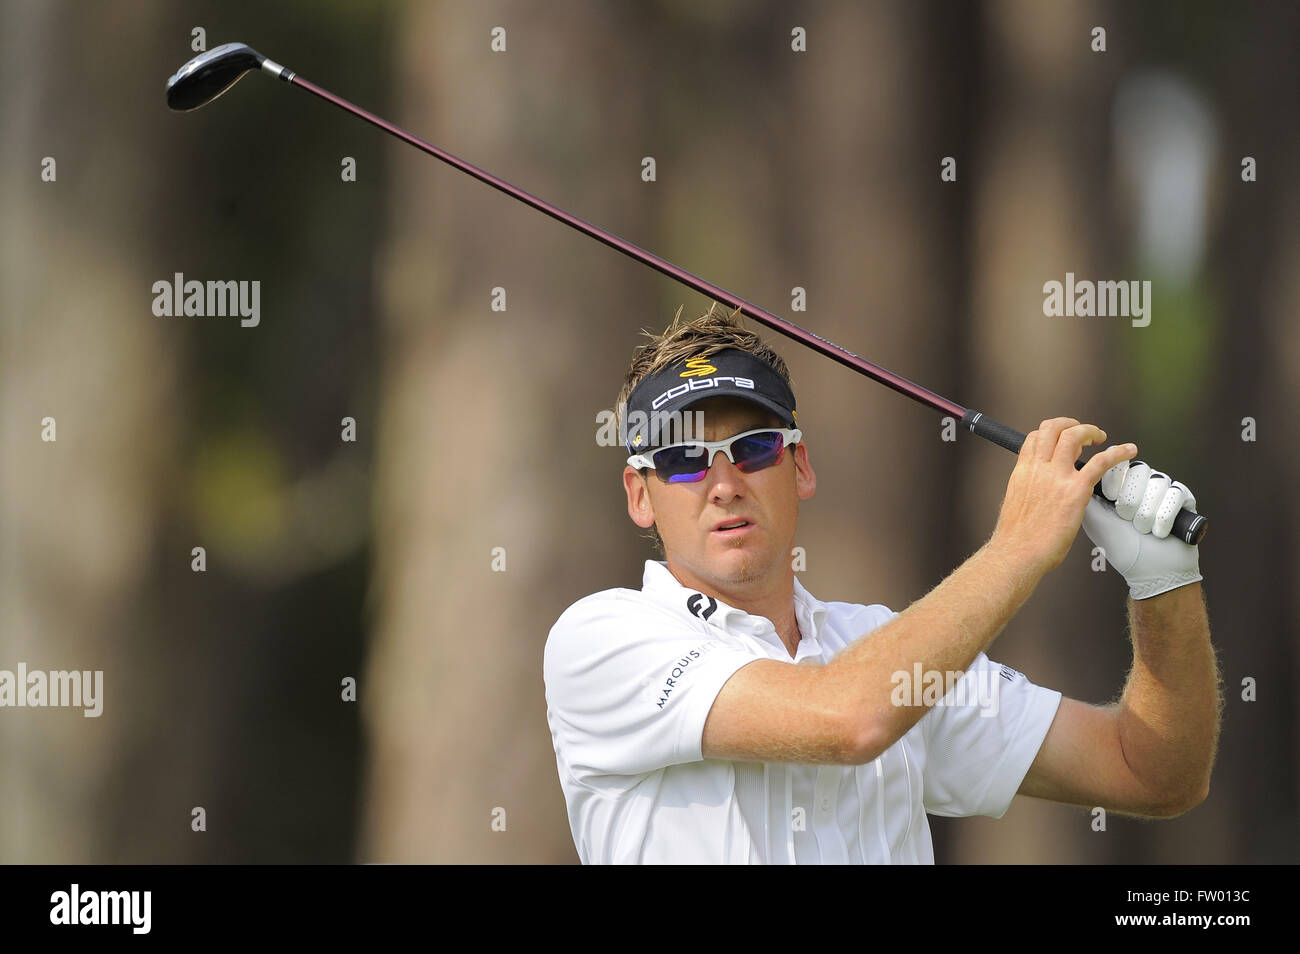 Ponte Vedra Beach, Florida, UNITED STATES. 6th May, 2009. Ian Poulter of England tees off on the 12th hole during - Stock Image